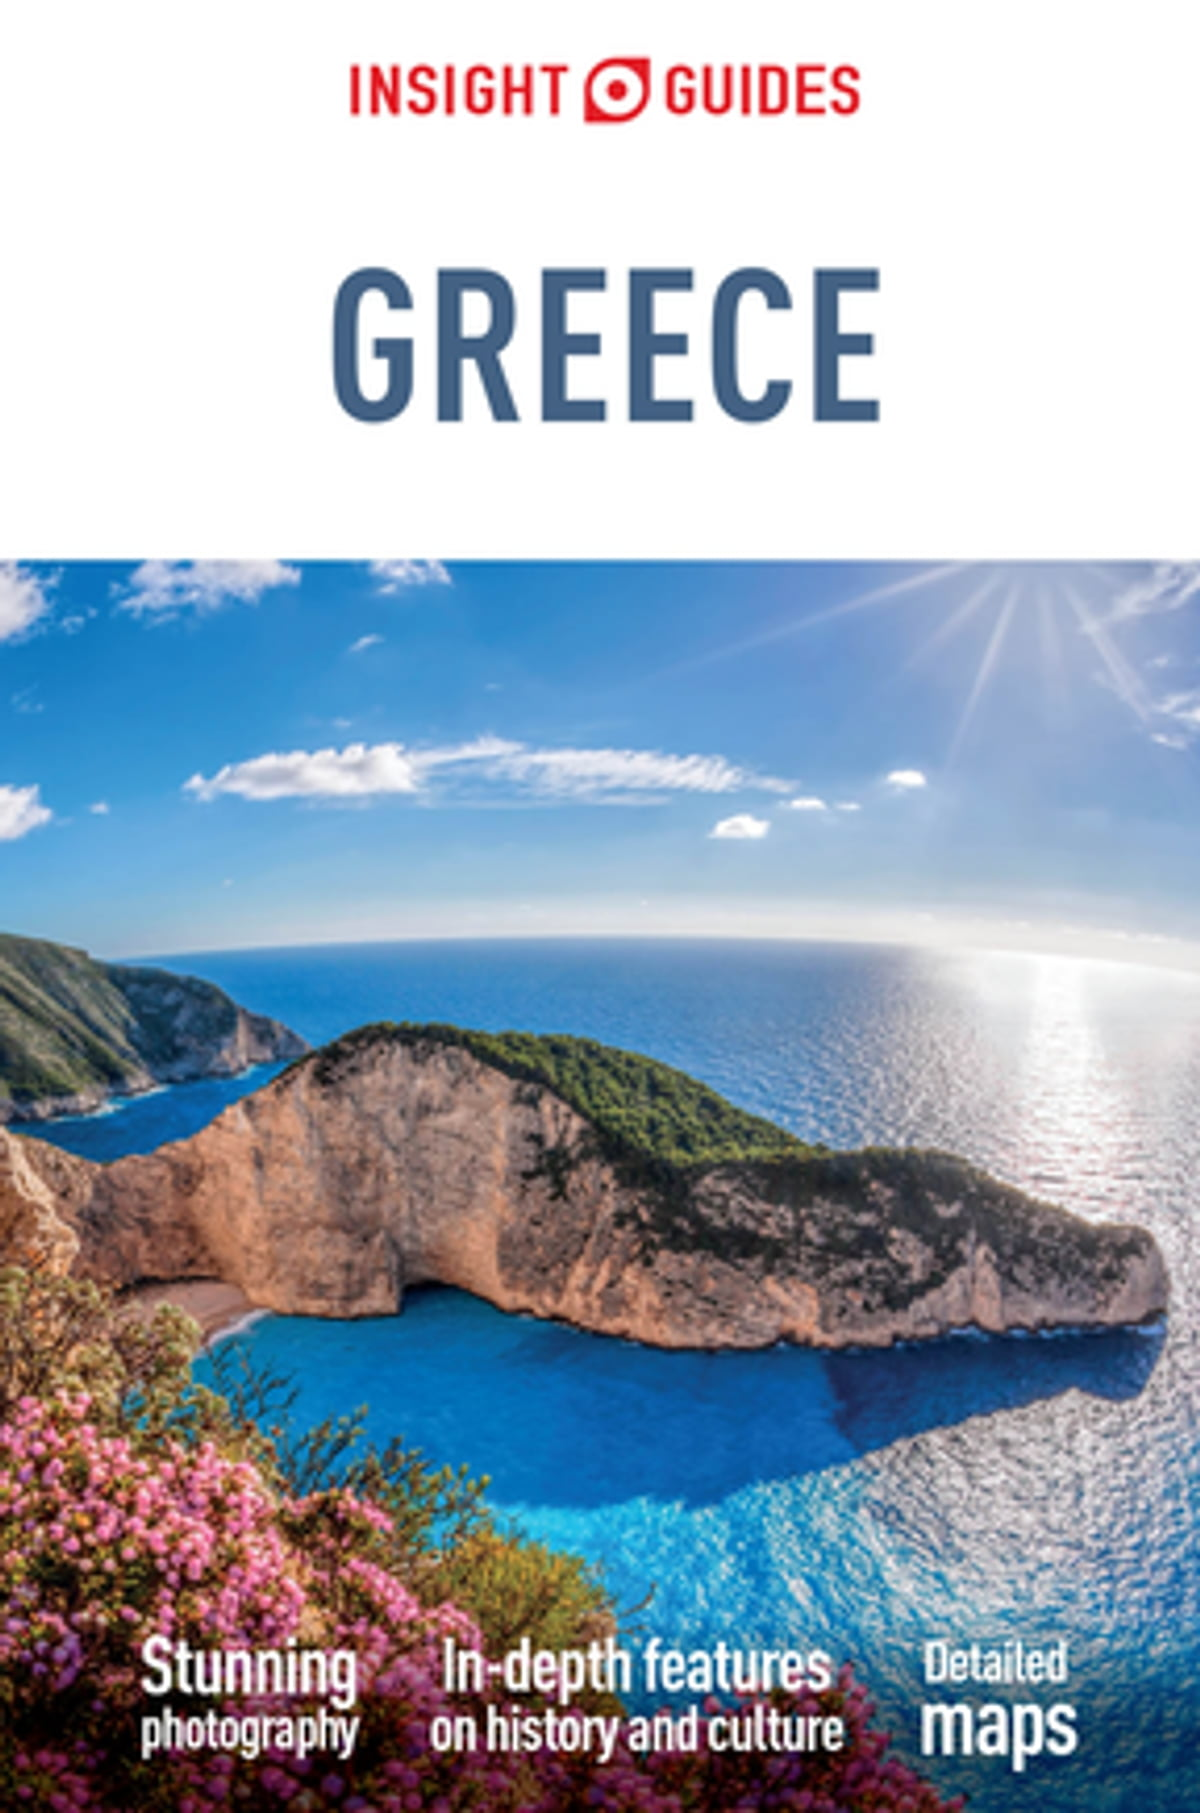 Insight Guides Greece eBook by Insight Guides - 9781786716750 | Rakuten Kobo